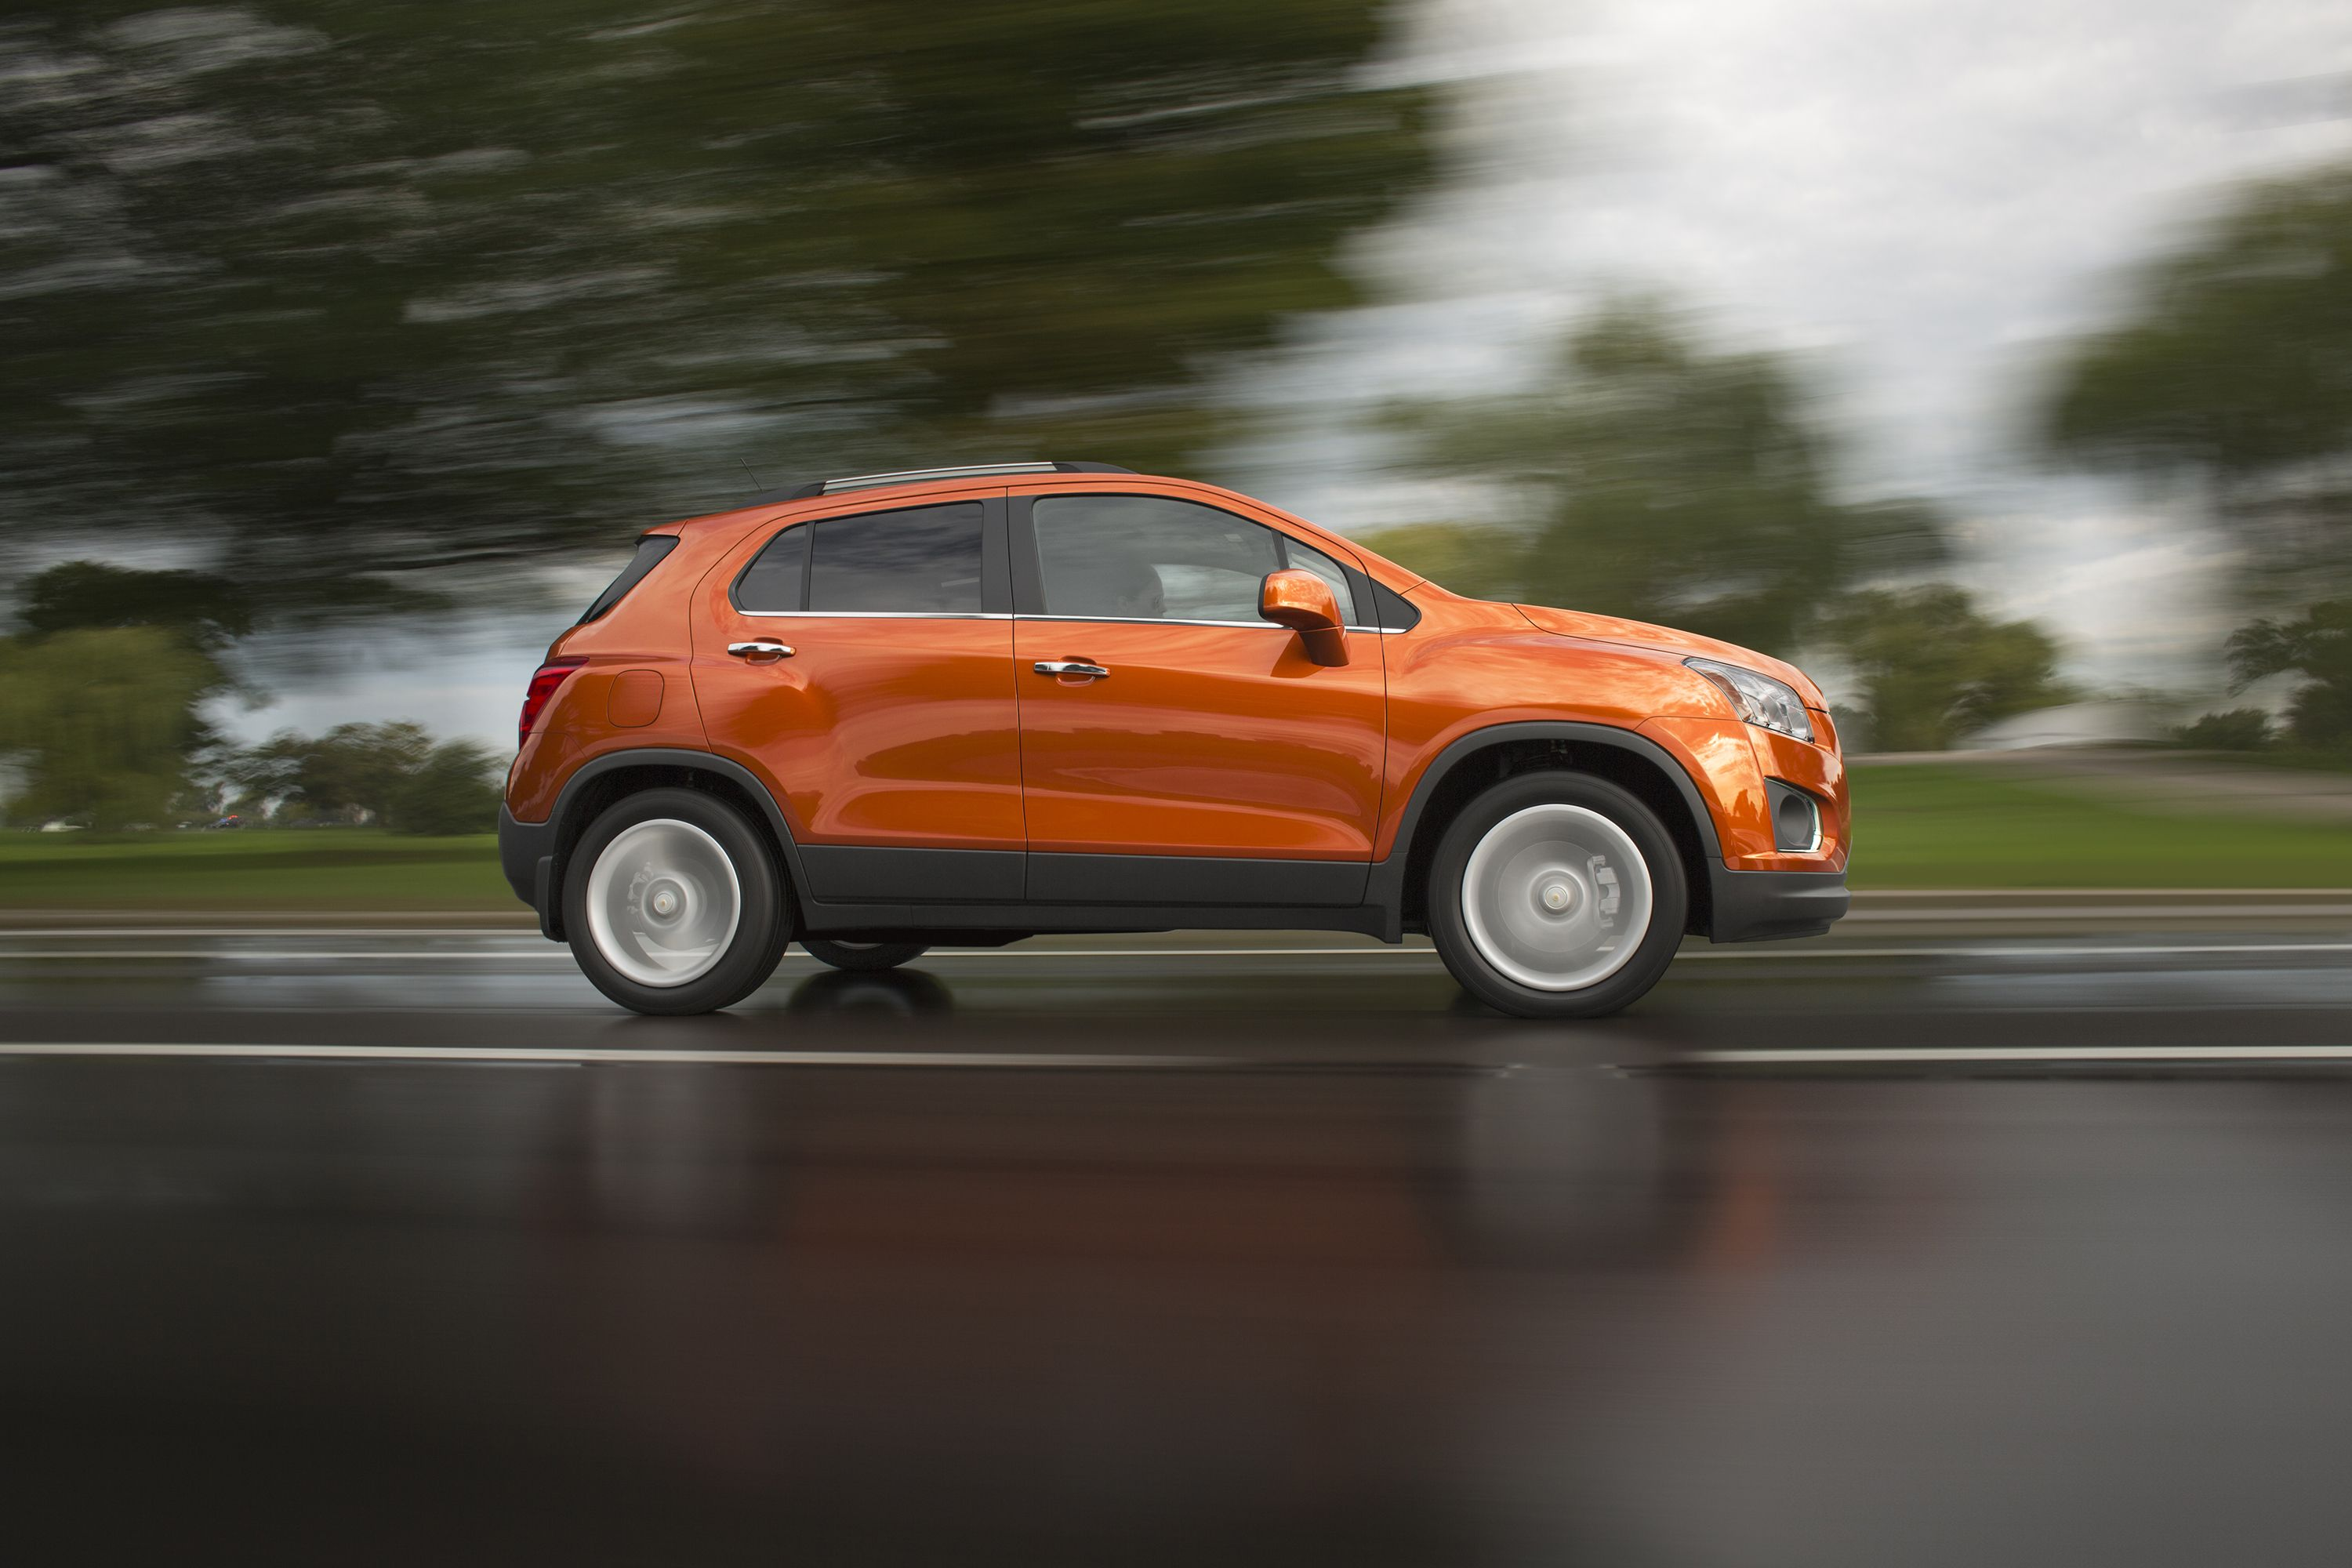 Sit Back Relax And Focus On The Trax Con Imagenes Autos Camionetas Transporte